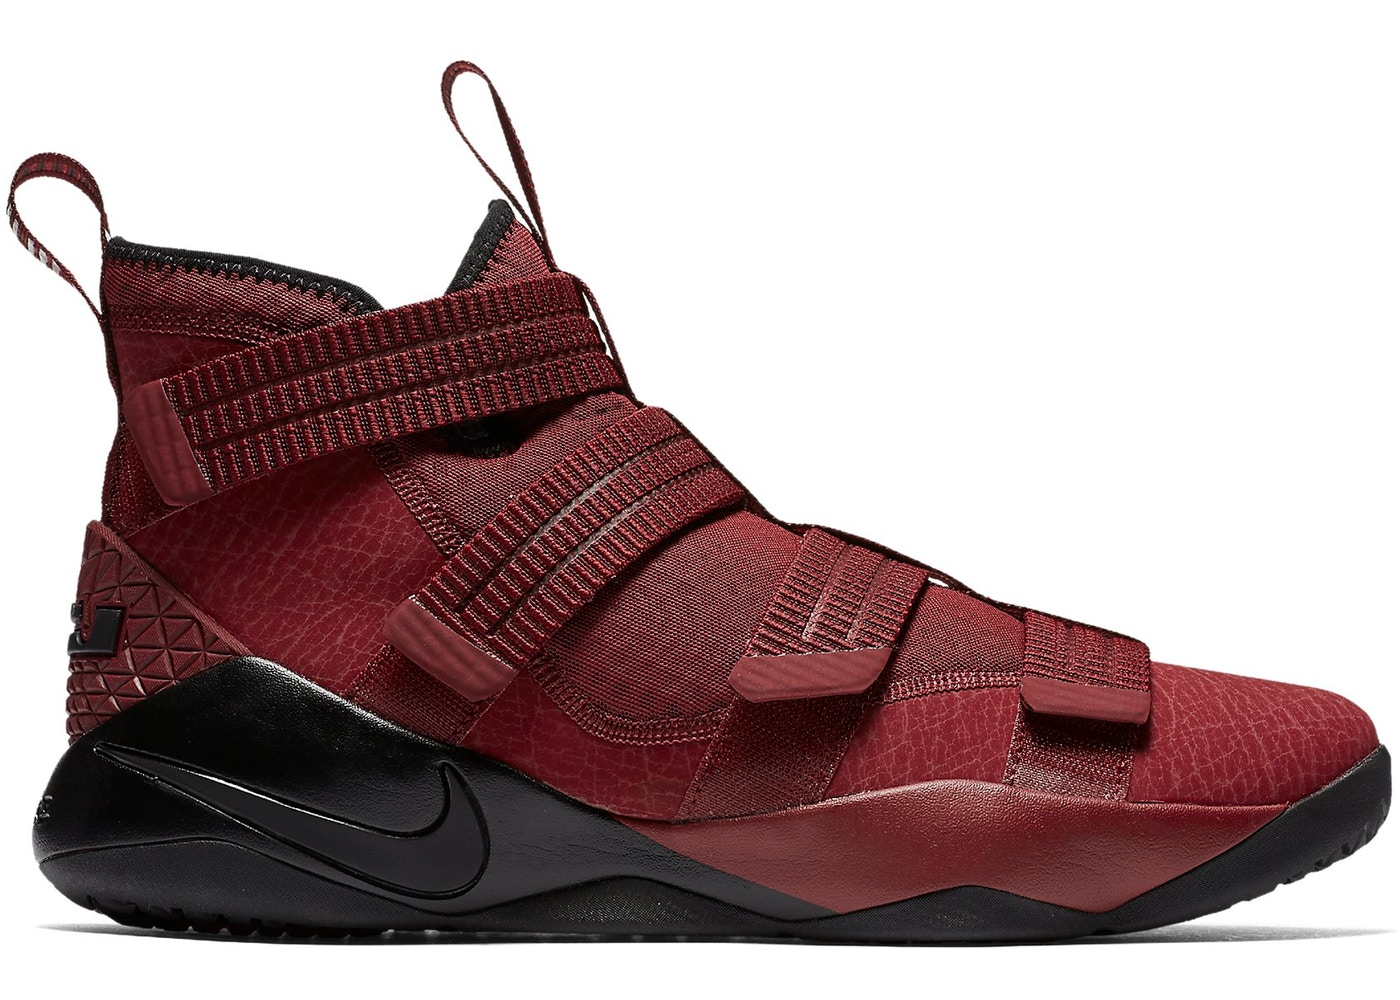 competitive price 920b9 79767 Buy Nike LeBron Zoom Soldier Shoes & Deadstock Sneakers